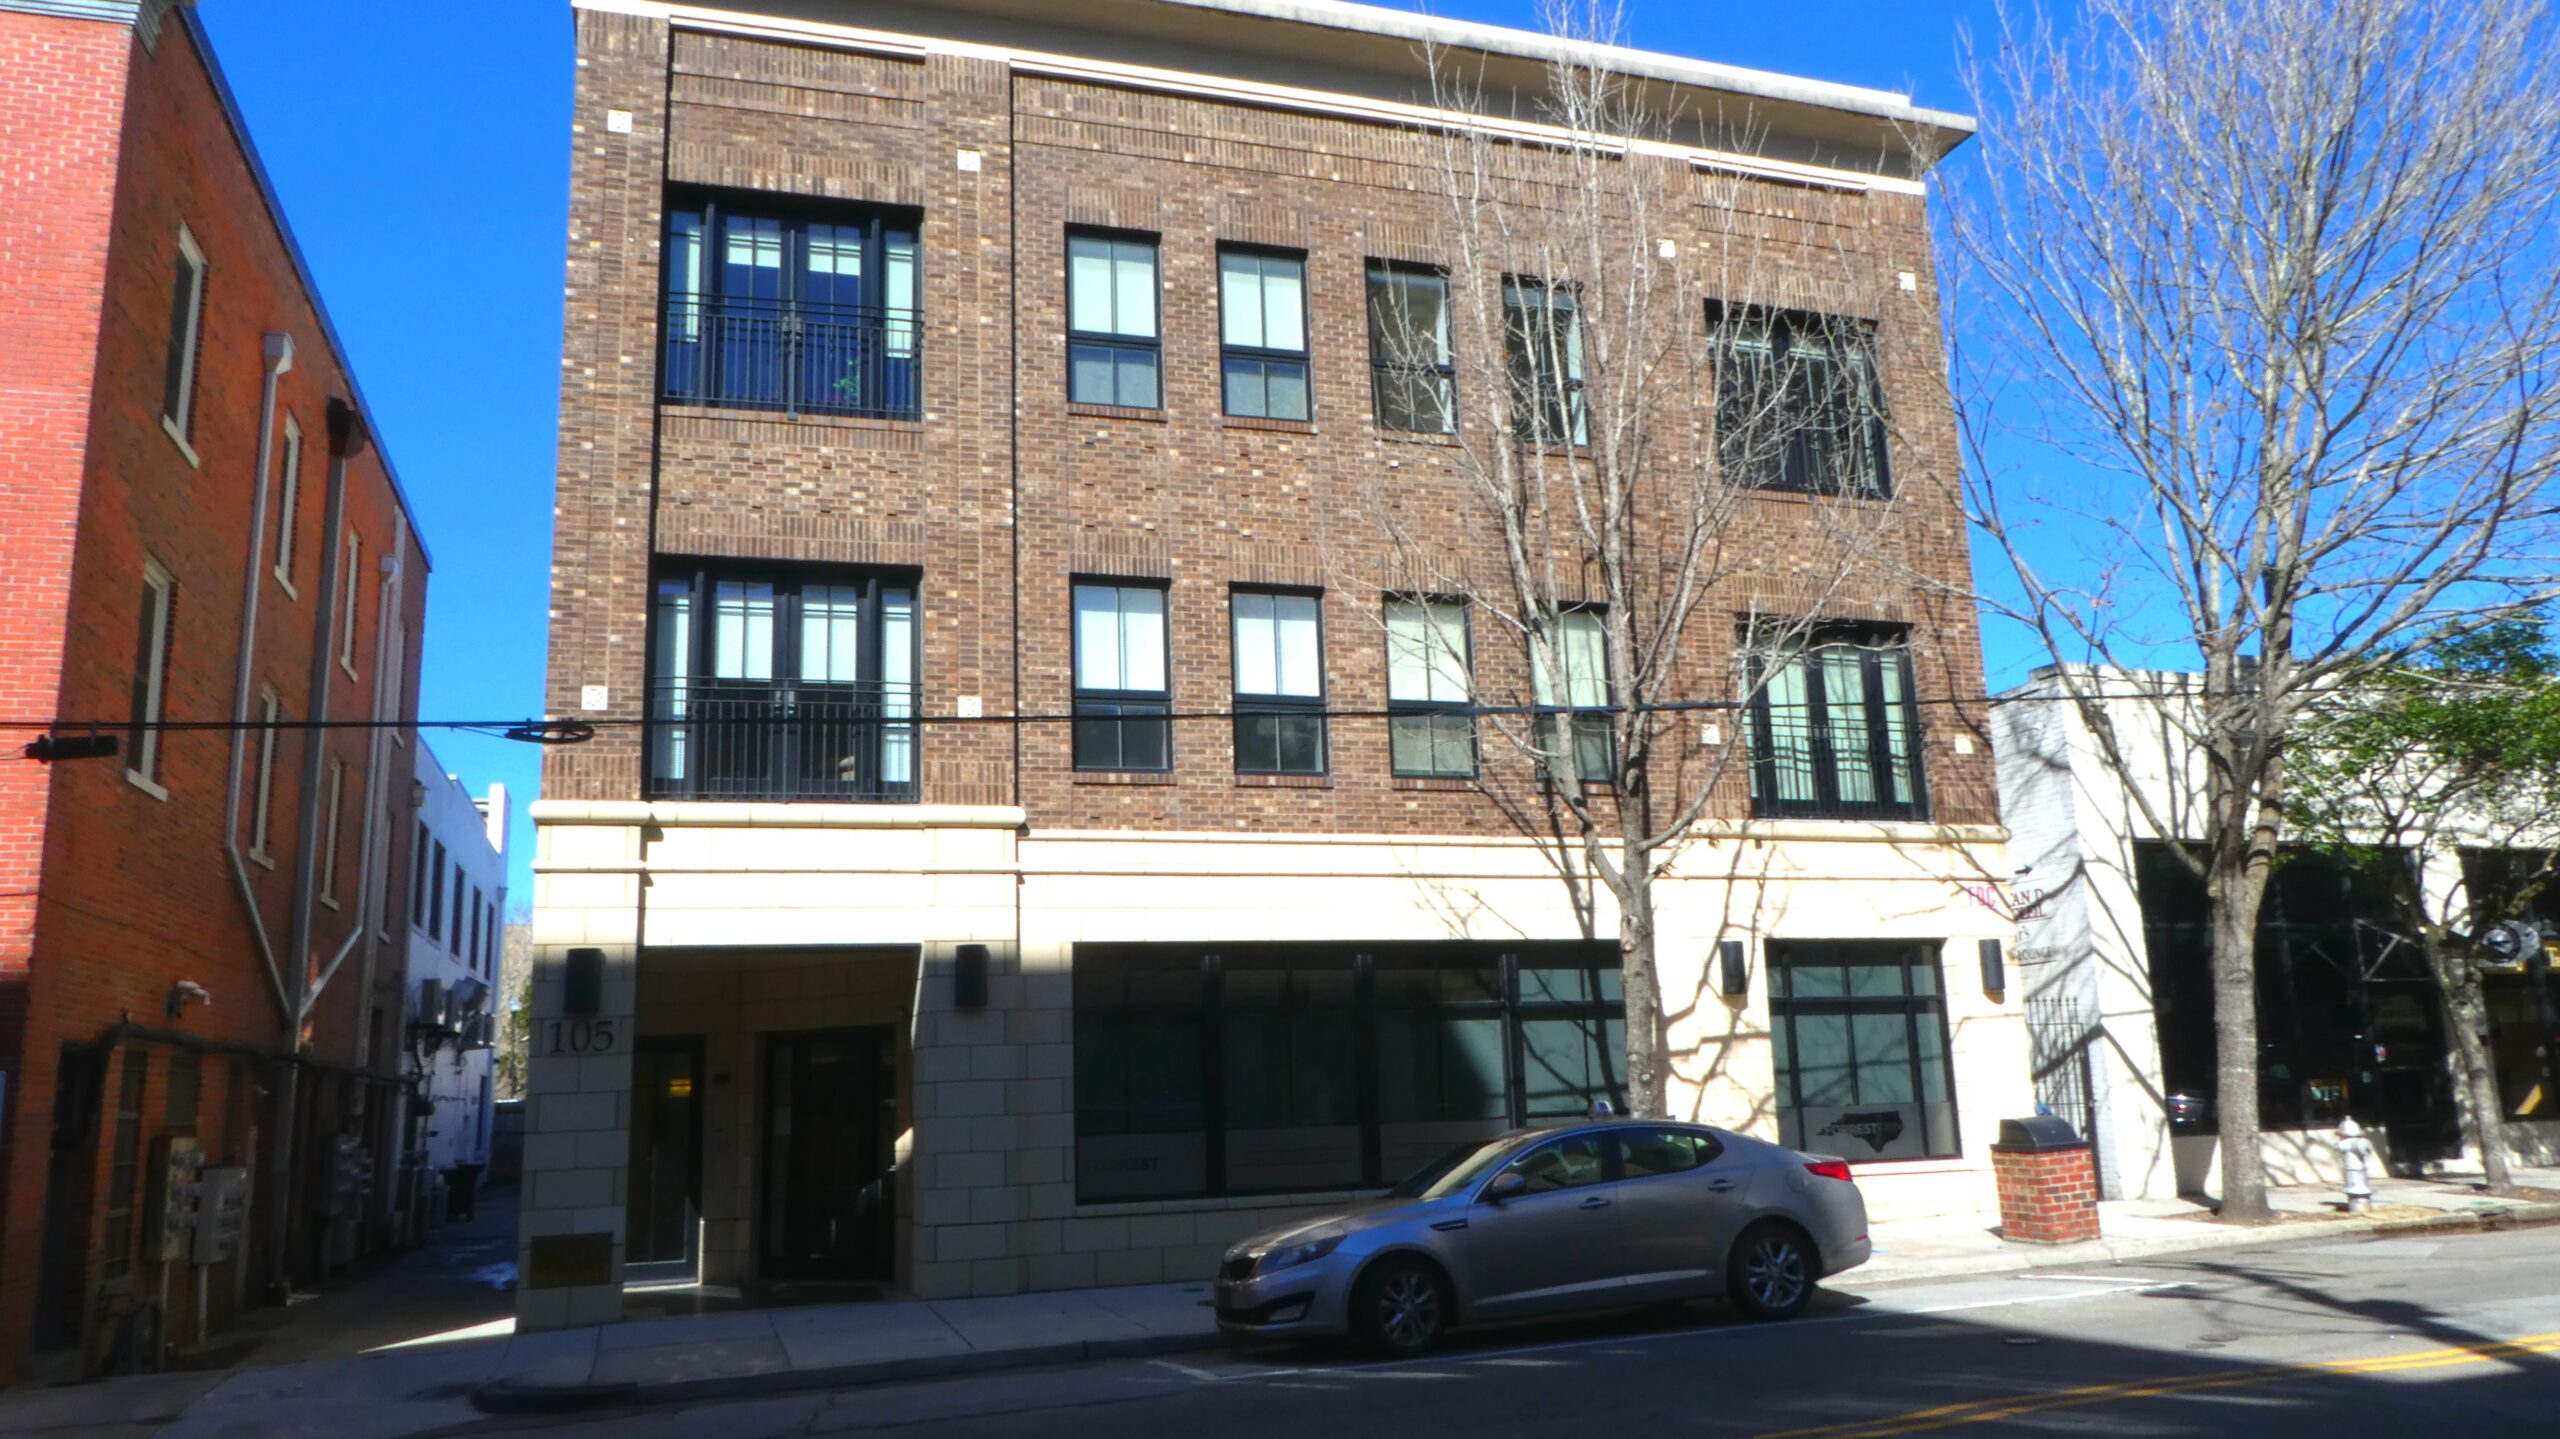 New York Hatters building on Grace Street in Wilmington 4 stories with a brick façade